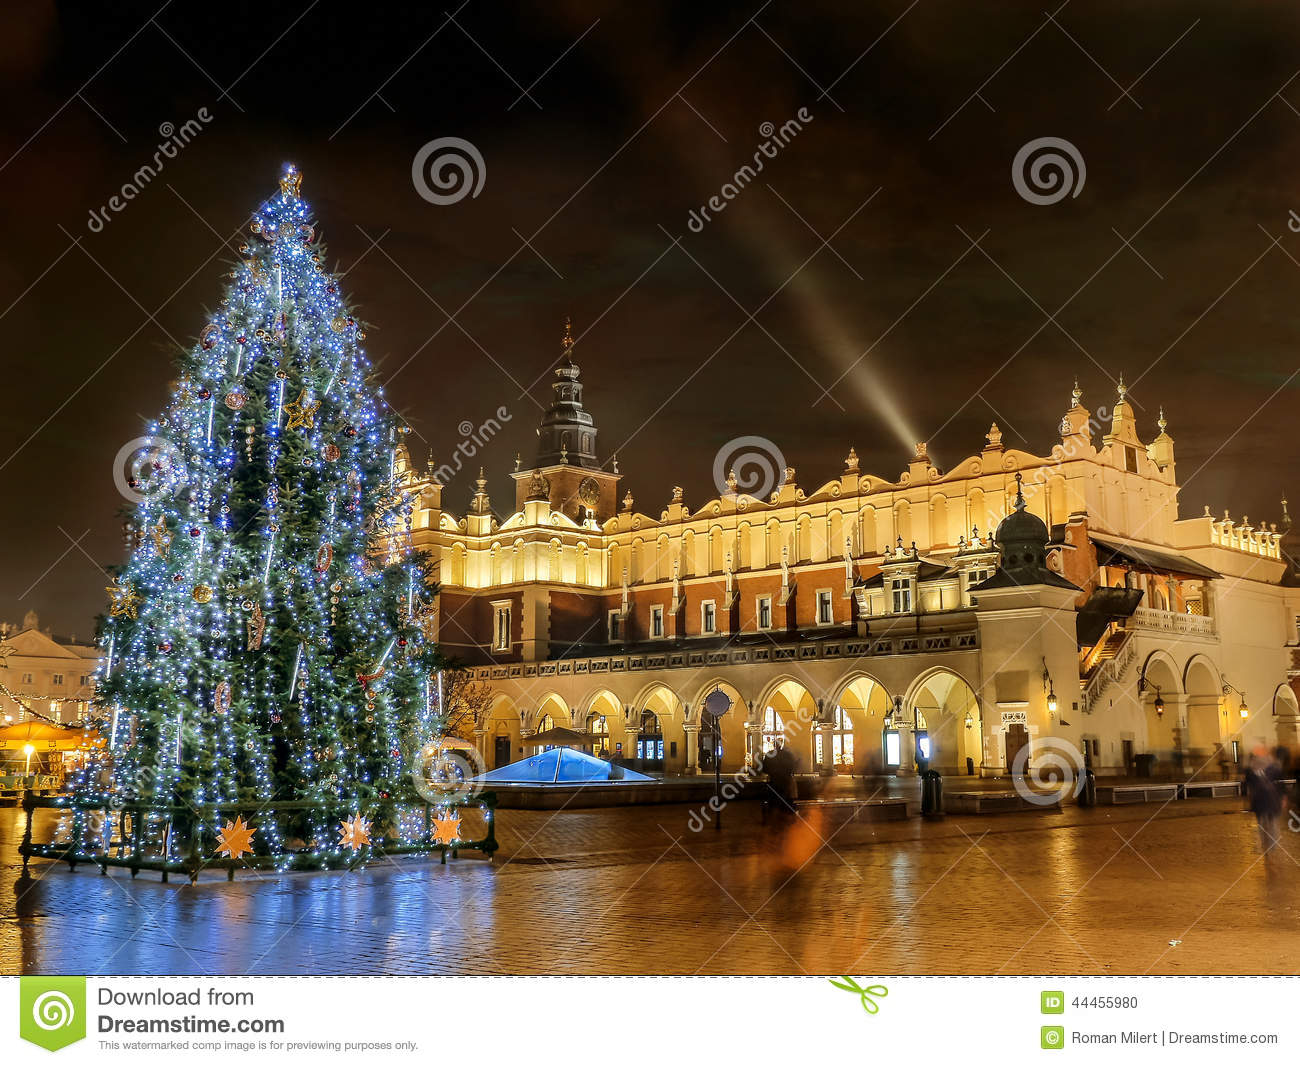 Projecteur Noel Exterieur Video Outdoor Christmas Tree Stock Photo Image Of Landmark